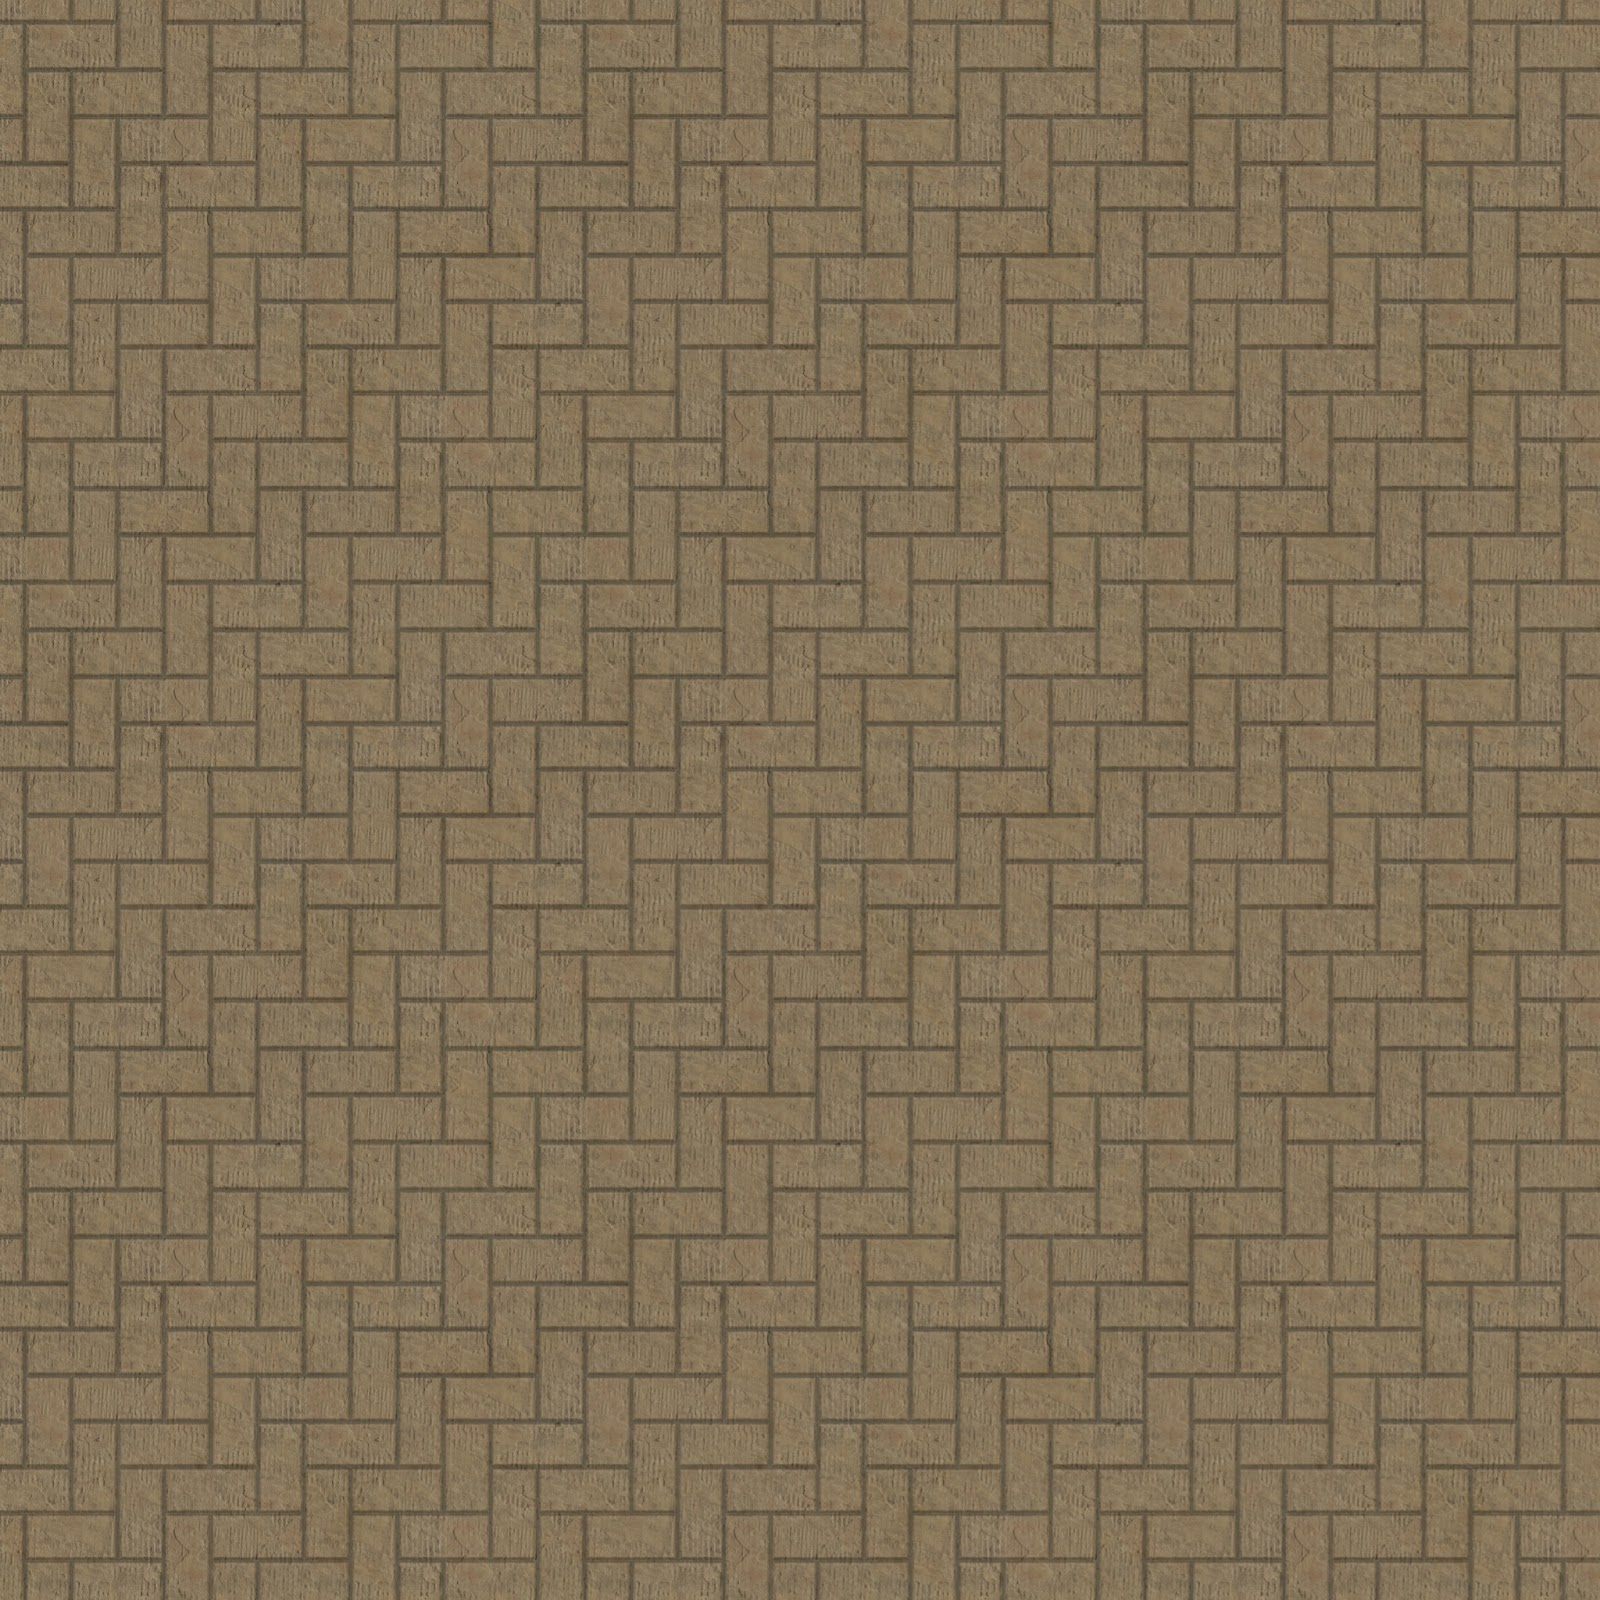 Tiling preview of the above texture